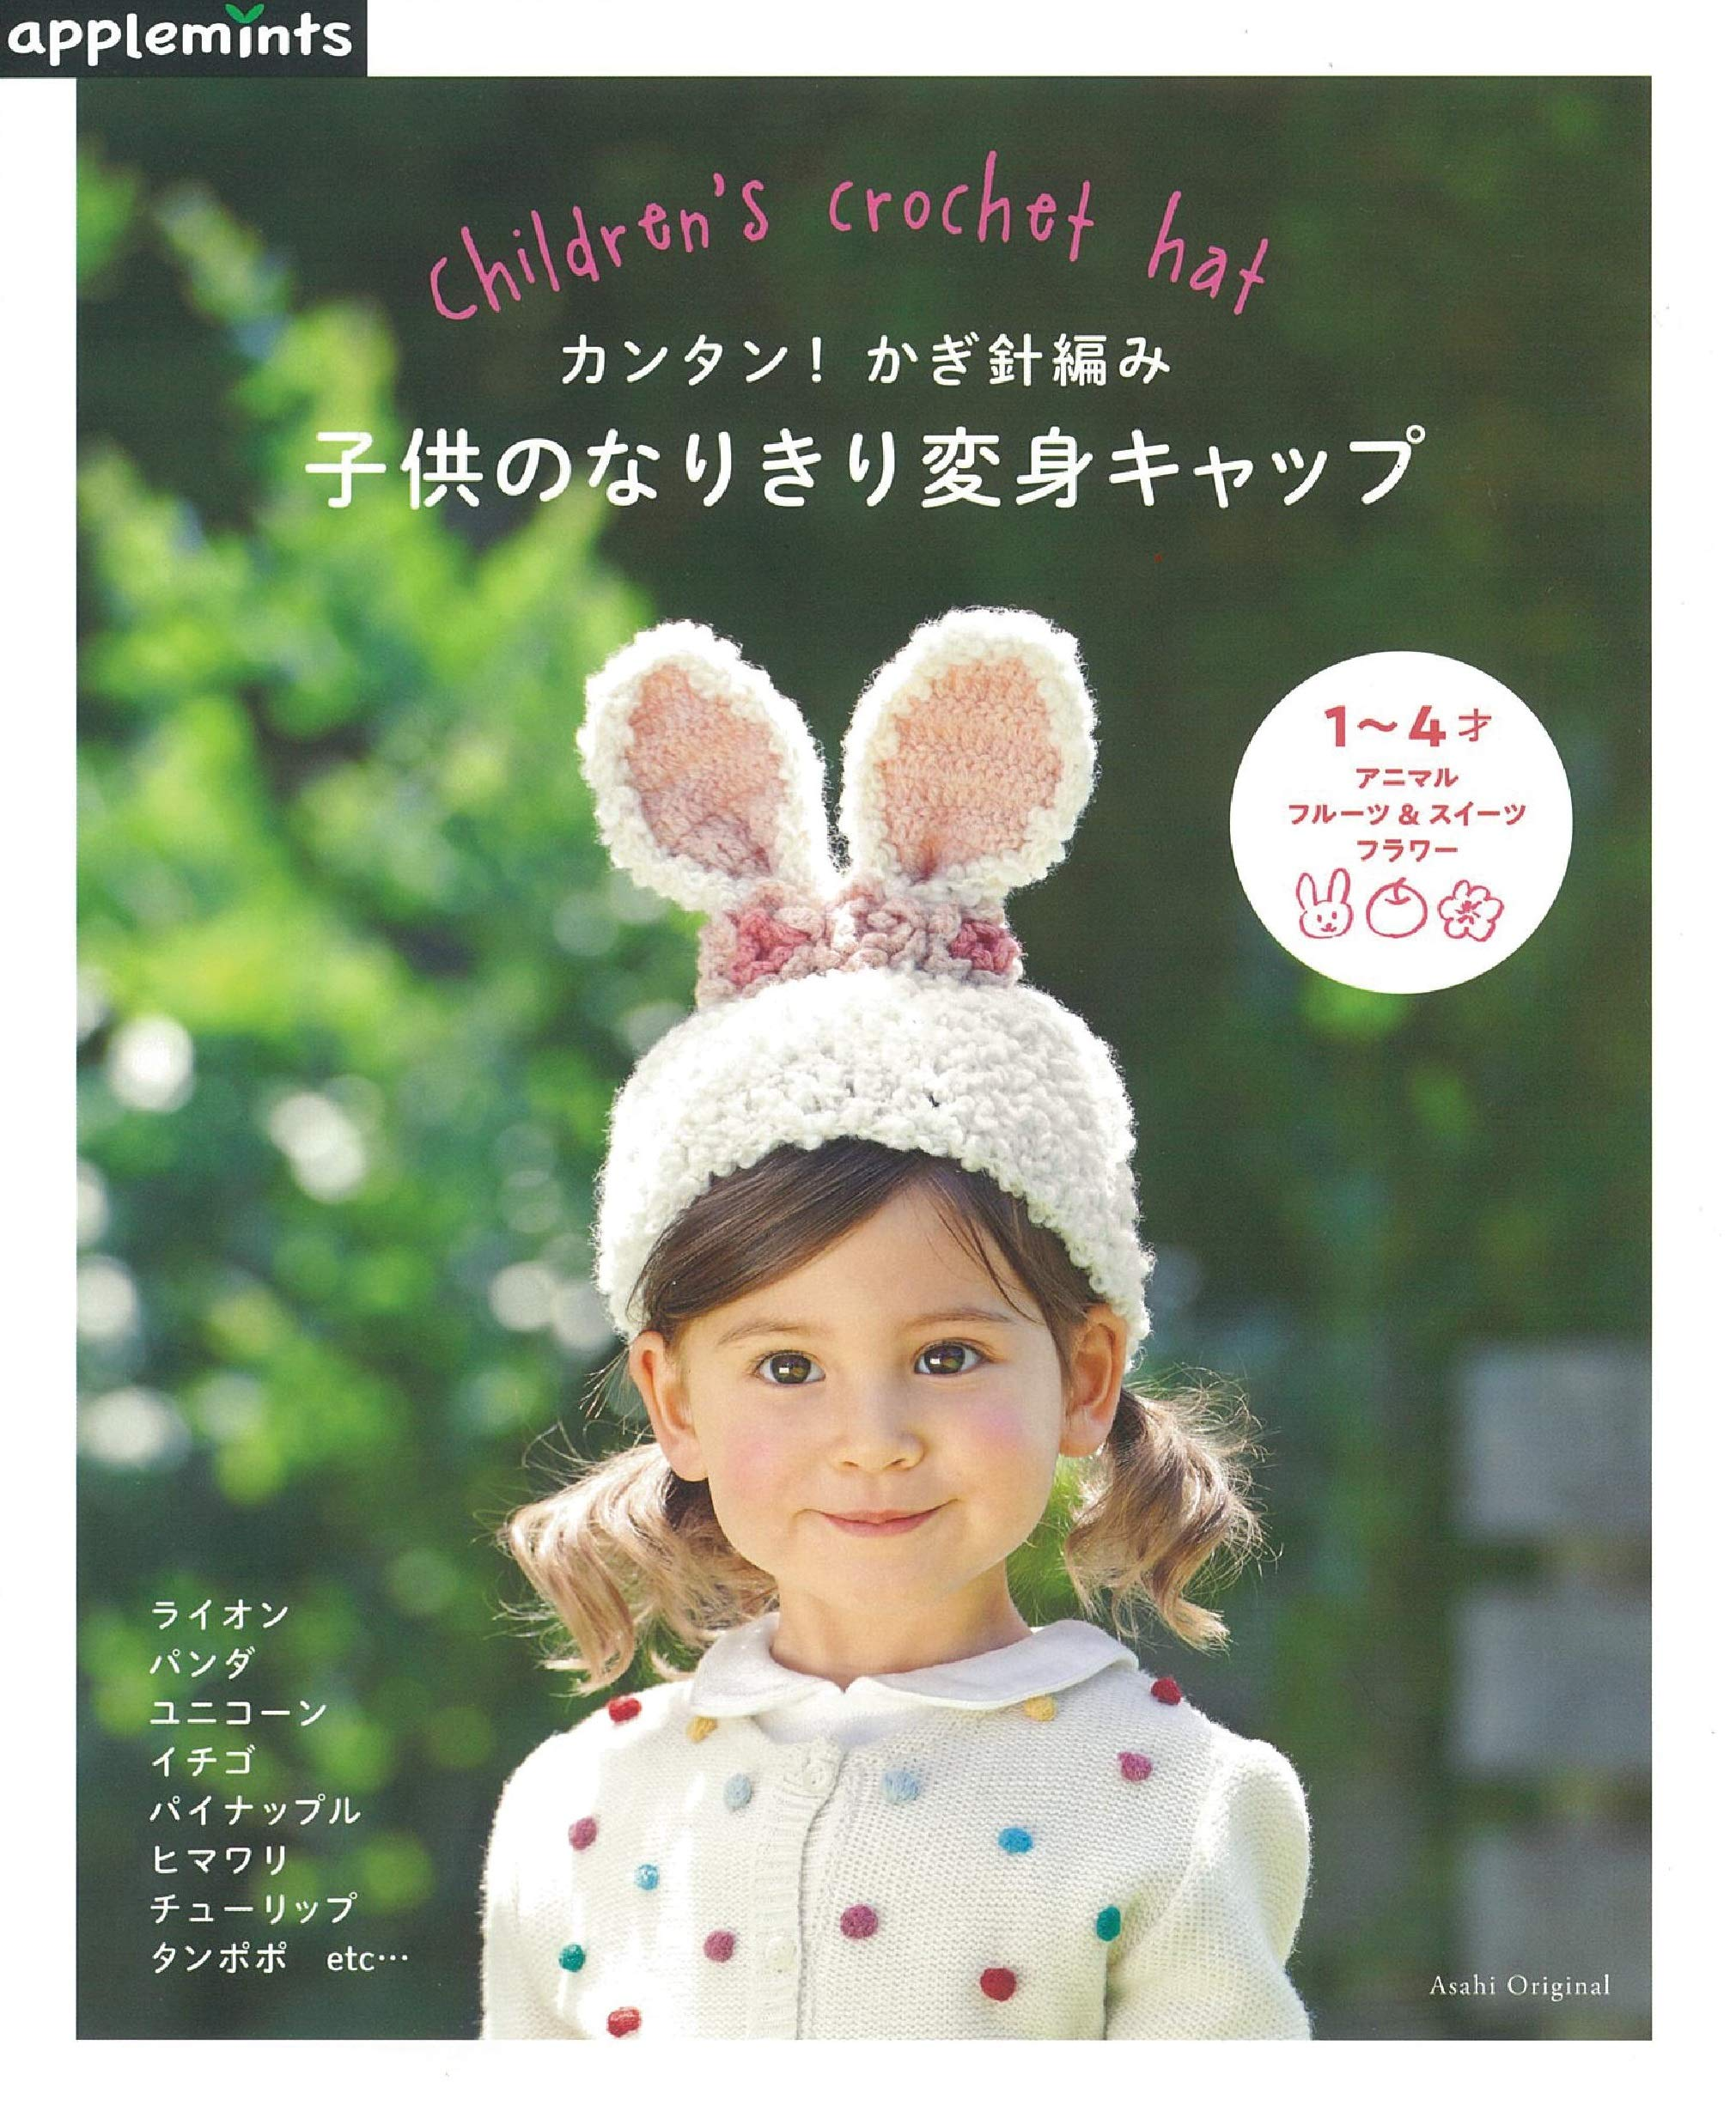 Crochet Childrens Narikiri Transformation Cap